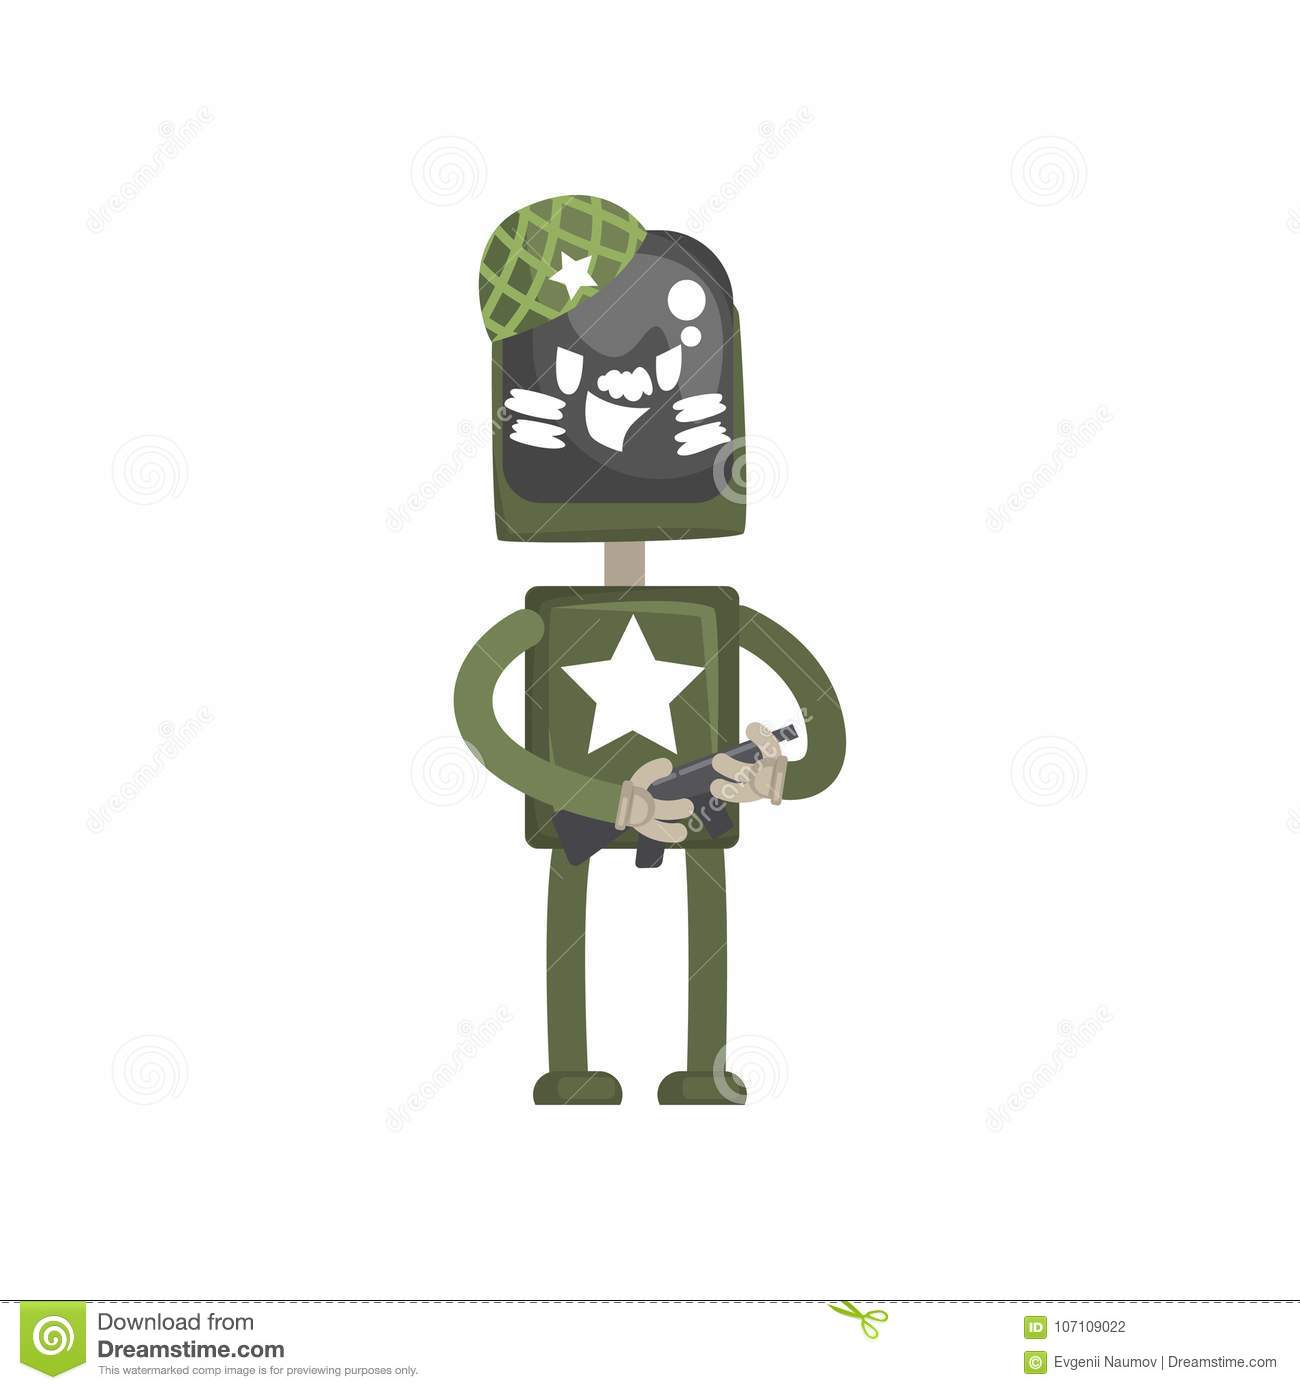 Robot military character, android in green uniform standing with automatic machine in its hands cartoon vector